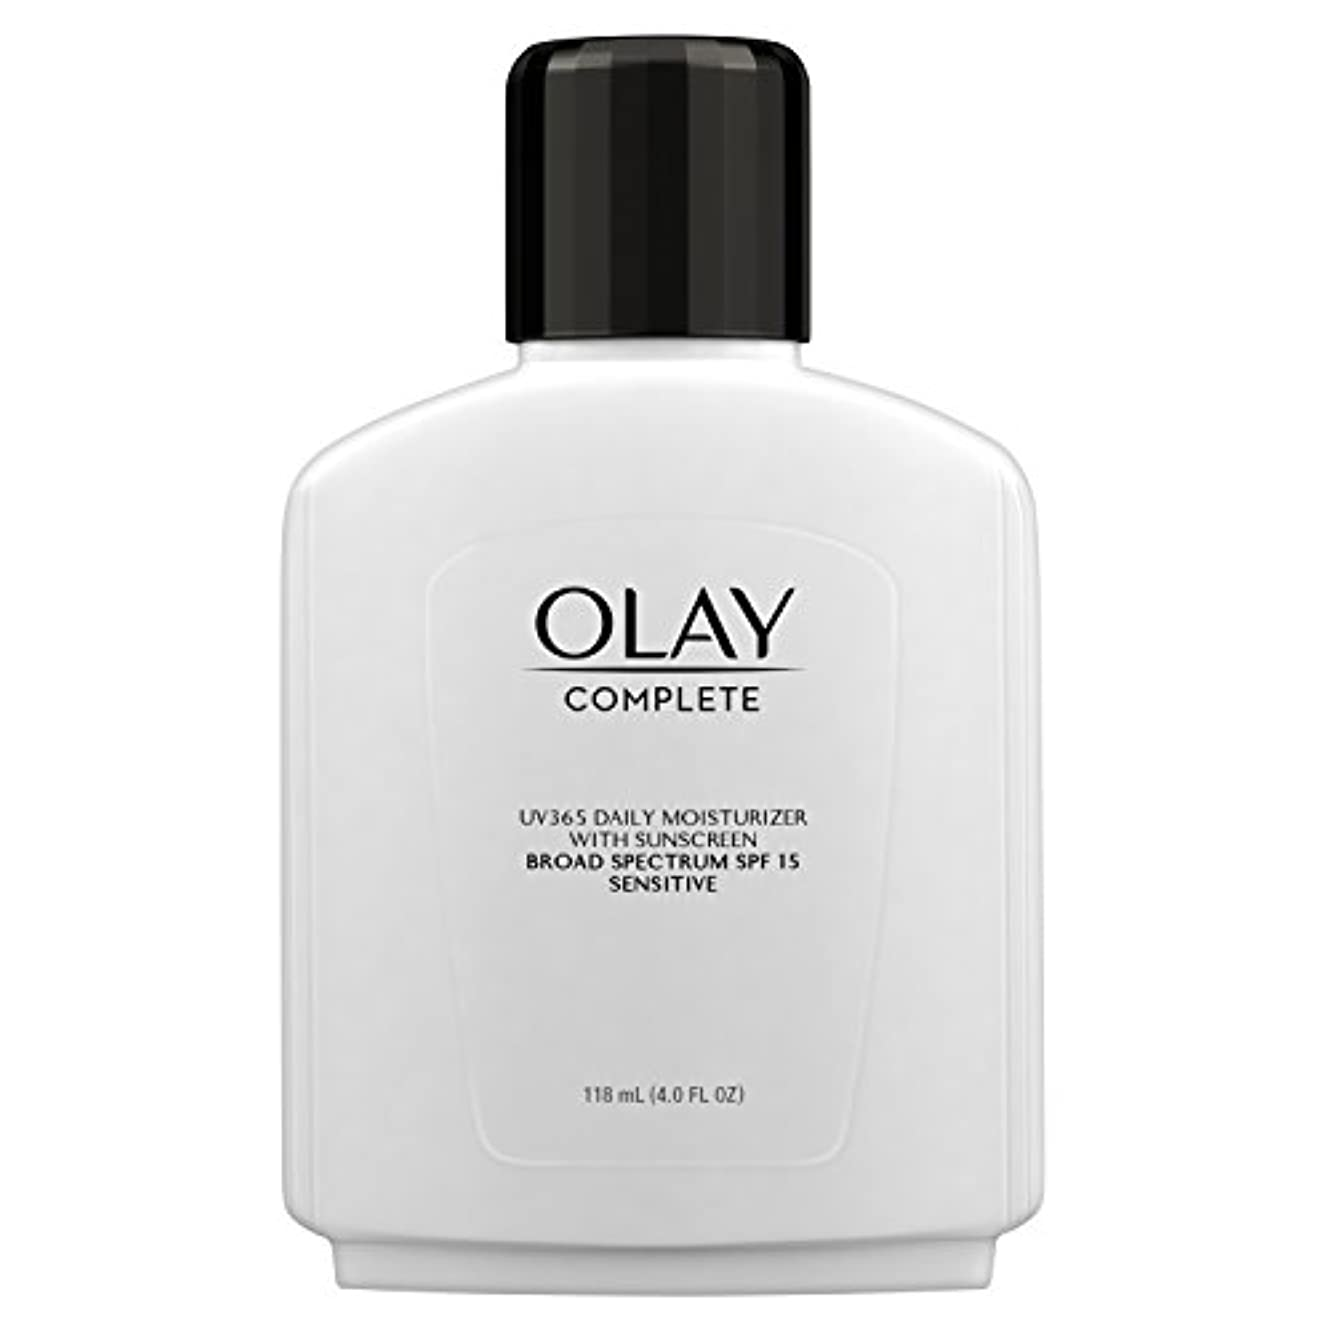 望み美容師飾るOlay Complete All Day Moisture Lotion UV Defense SPF 15, Sensitive Skin, 4 fl oz (118 ml) (1 pack) (並行輸入品)